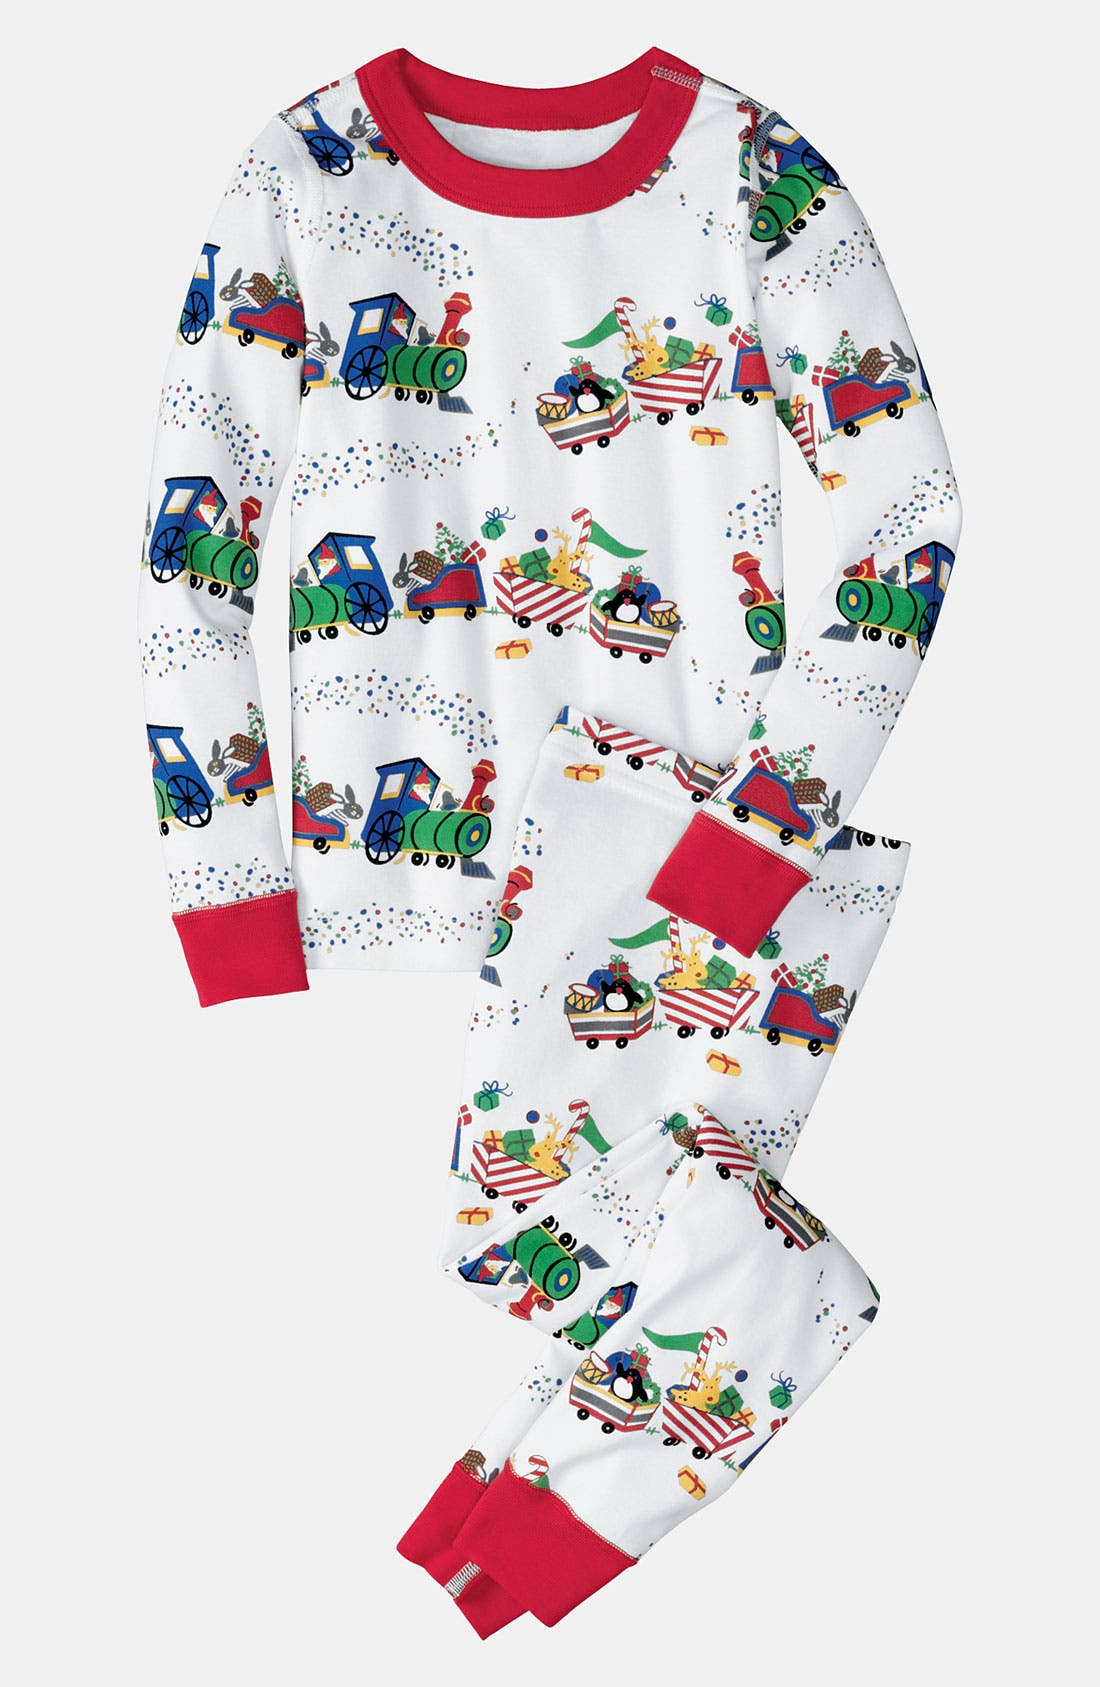 Main Image - Hanna Andersson Organic Cotton Fitted Two-Piece Pajamas (Little Kids & Big Kids)